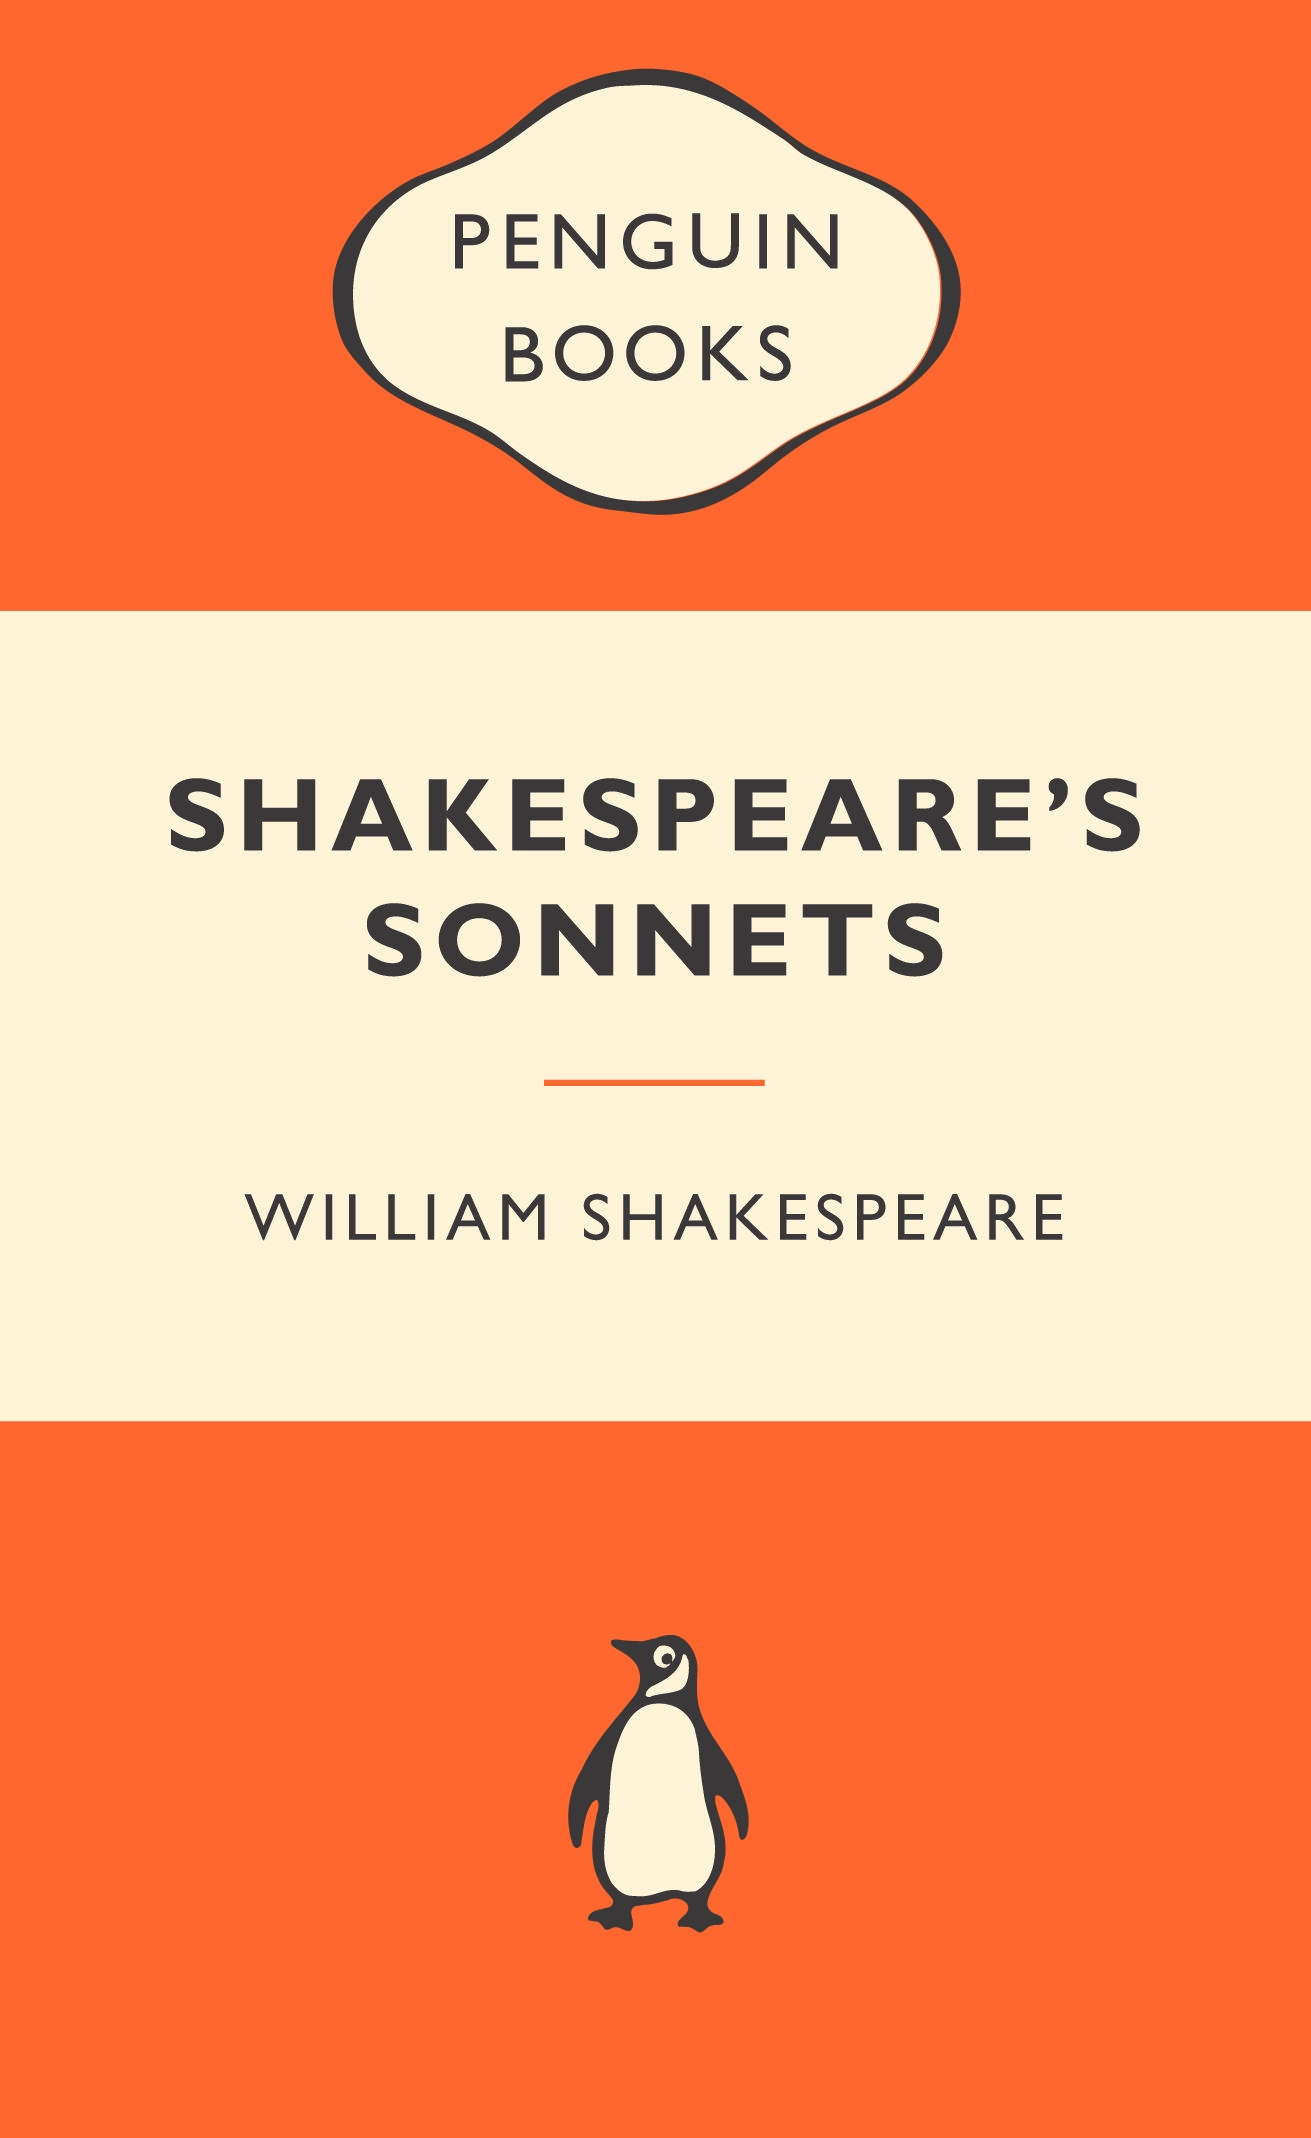 Original Penguin Book Covers : Shakespeare s sonnets popular penguins by william